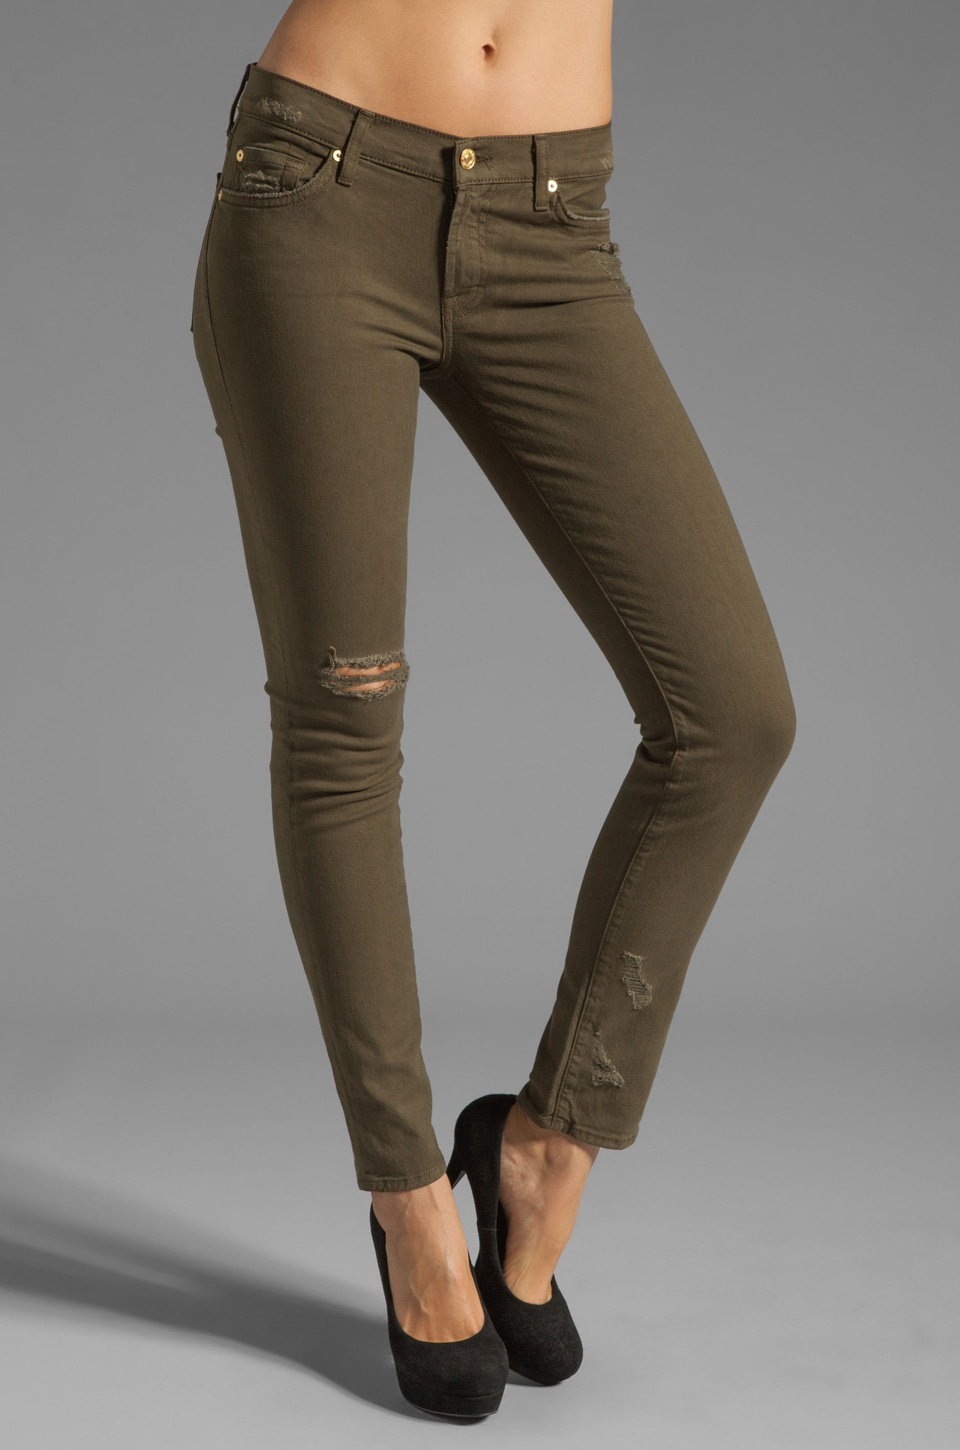 7 For All Mankind The Slim Cigarette in Army Green Destroyed